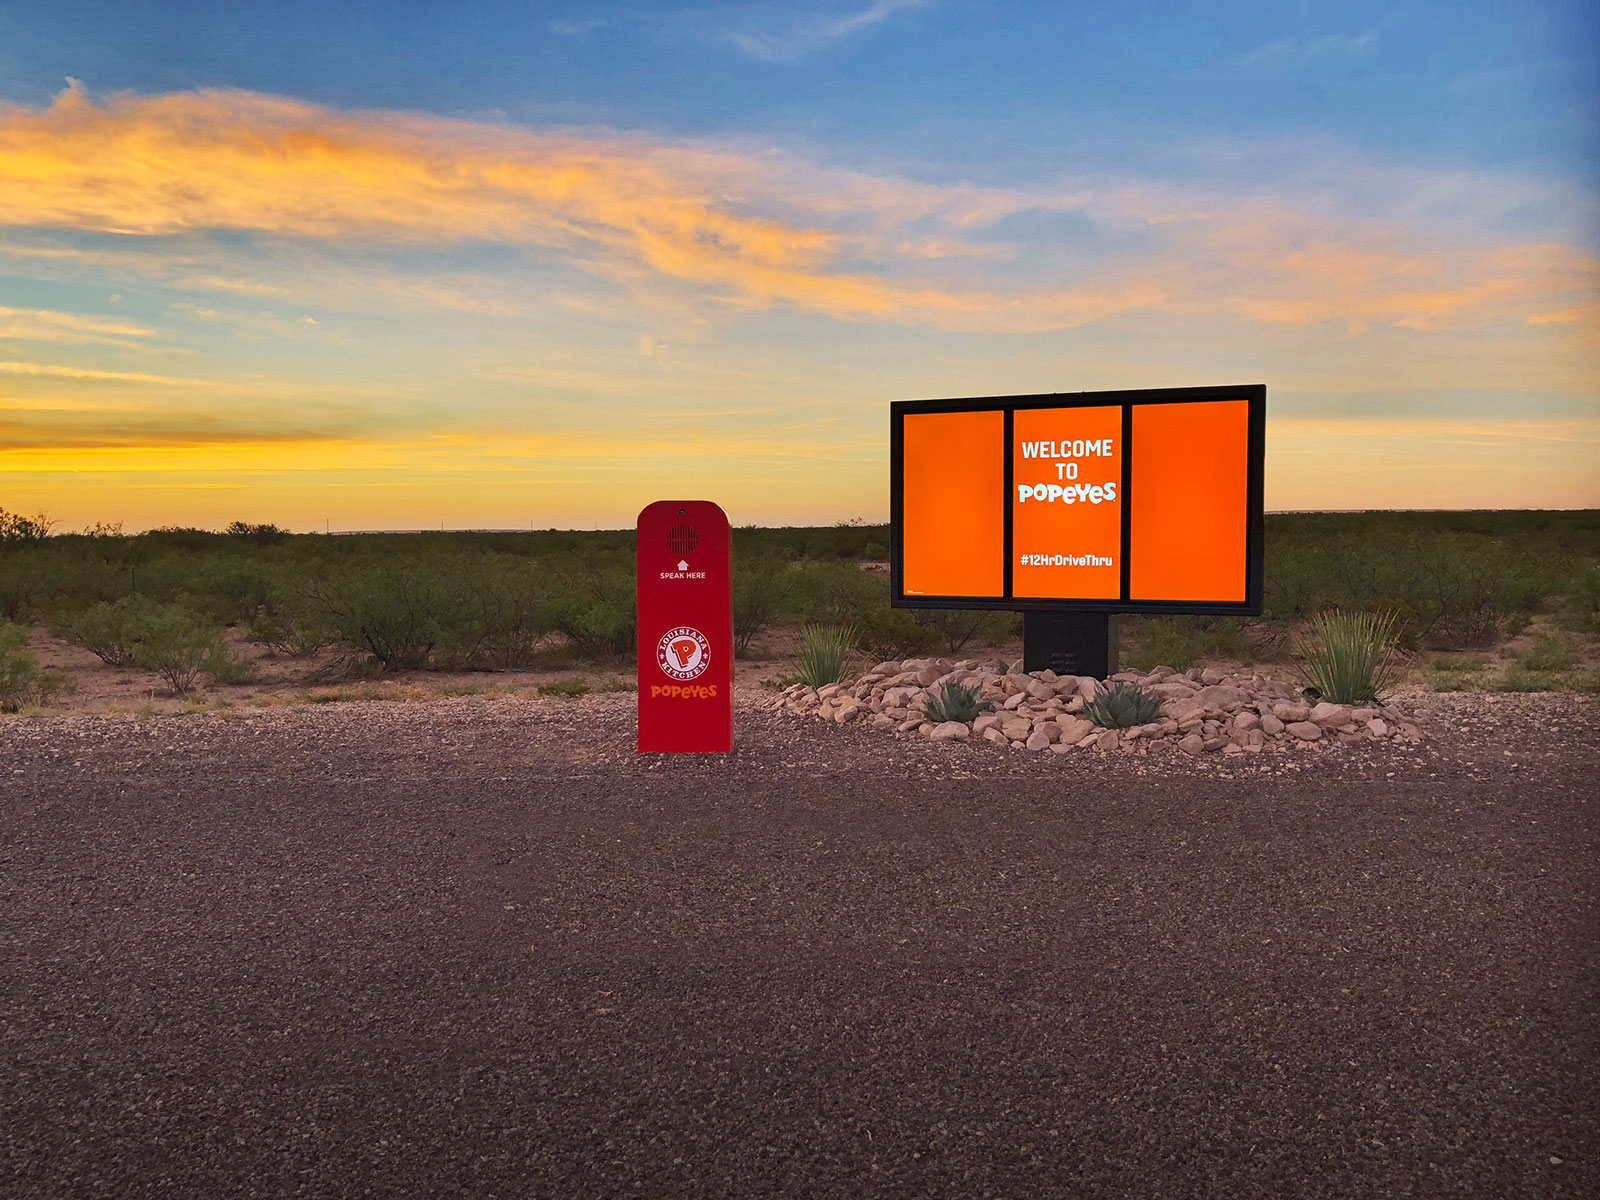 This Popeyes Drive-Thru Requires an 850-Mile Road Trip to Pick Up Your Food popeyes-12-hour-drive-thru-FT-BLOG1018